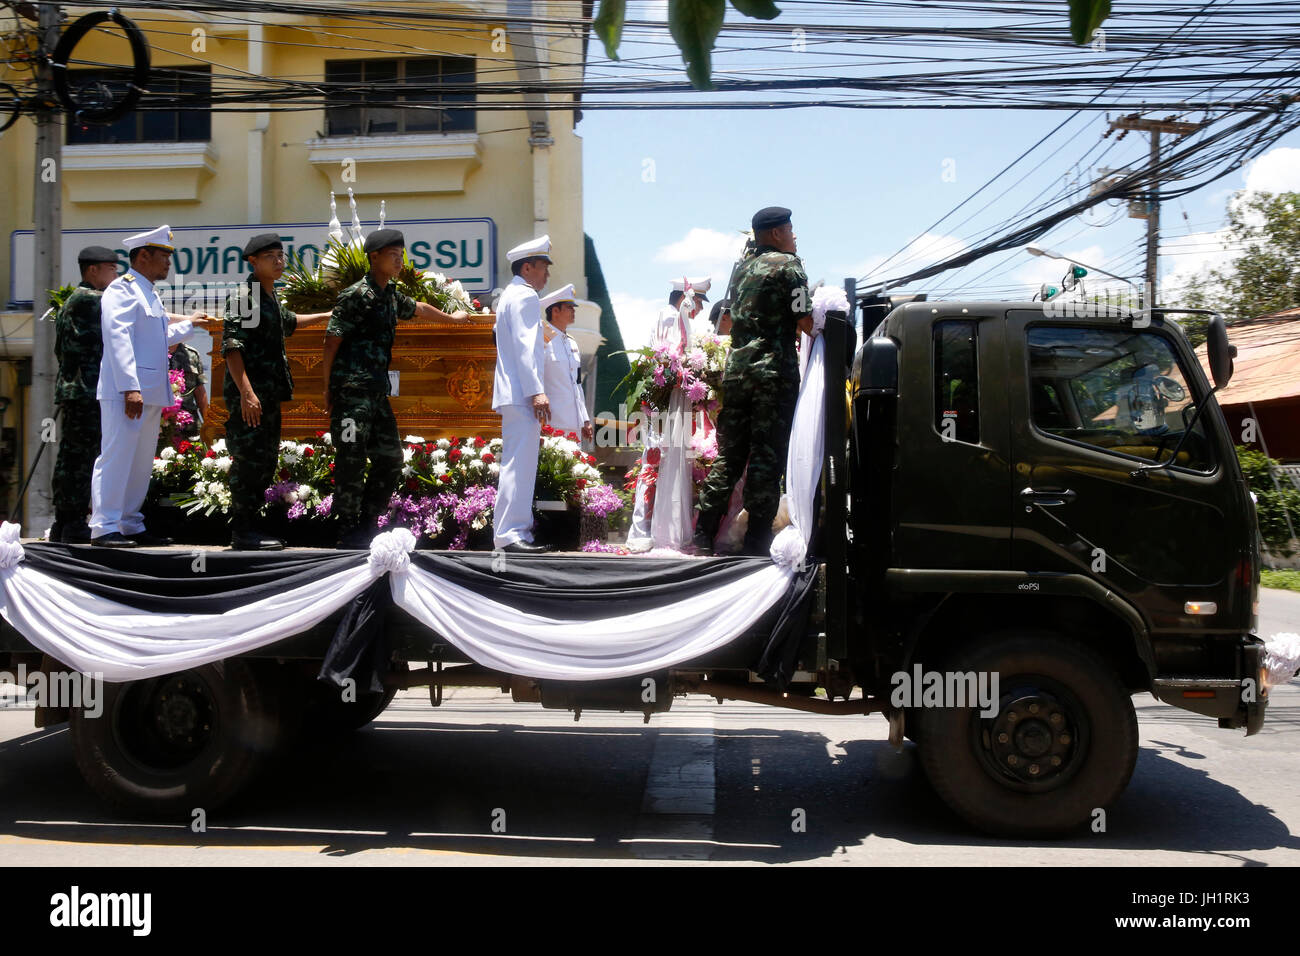 Military funeral. Thailand. - Stock Image